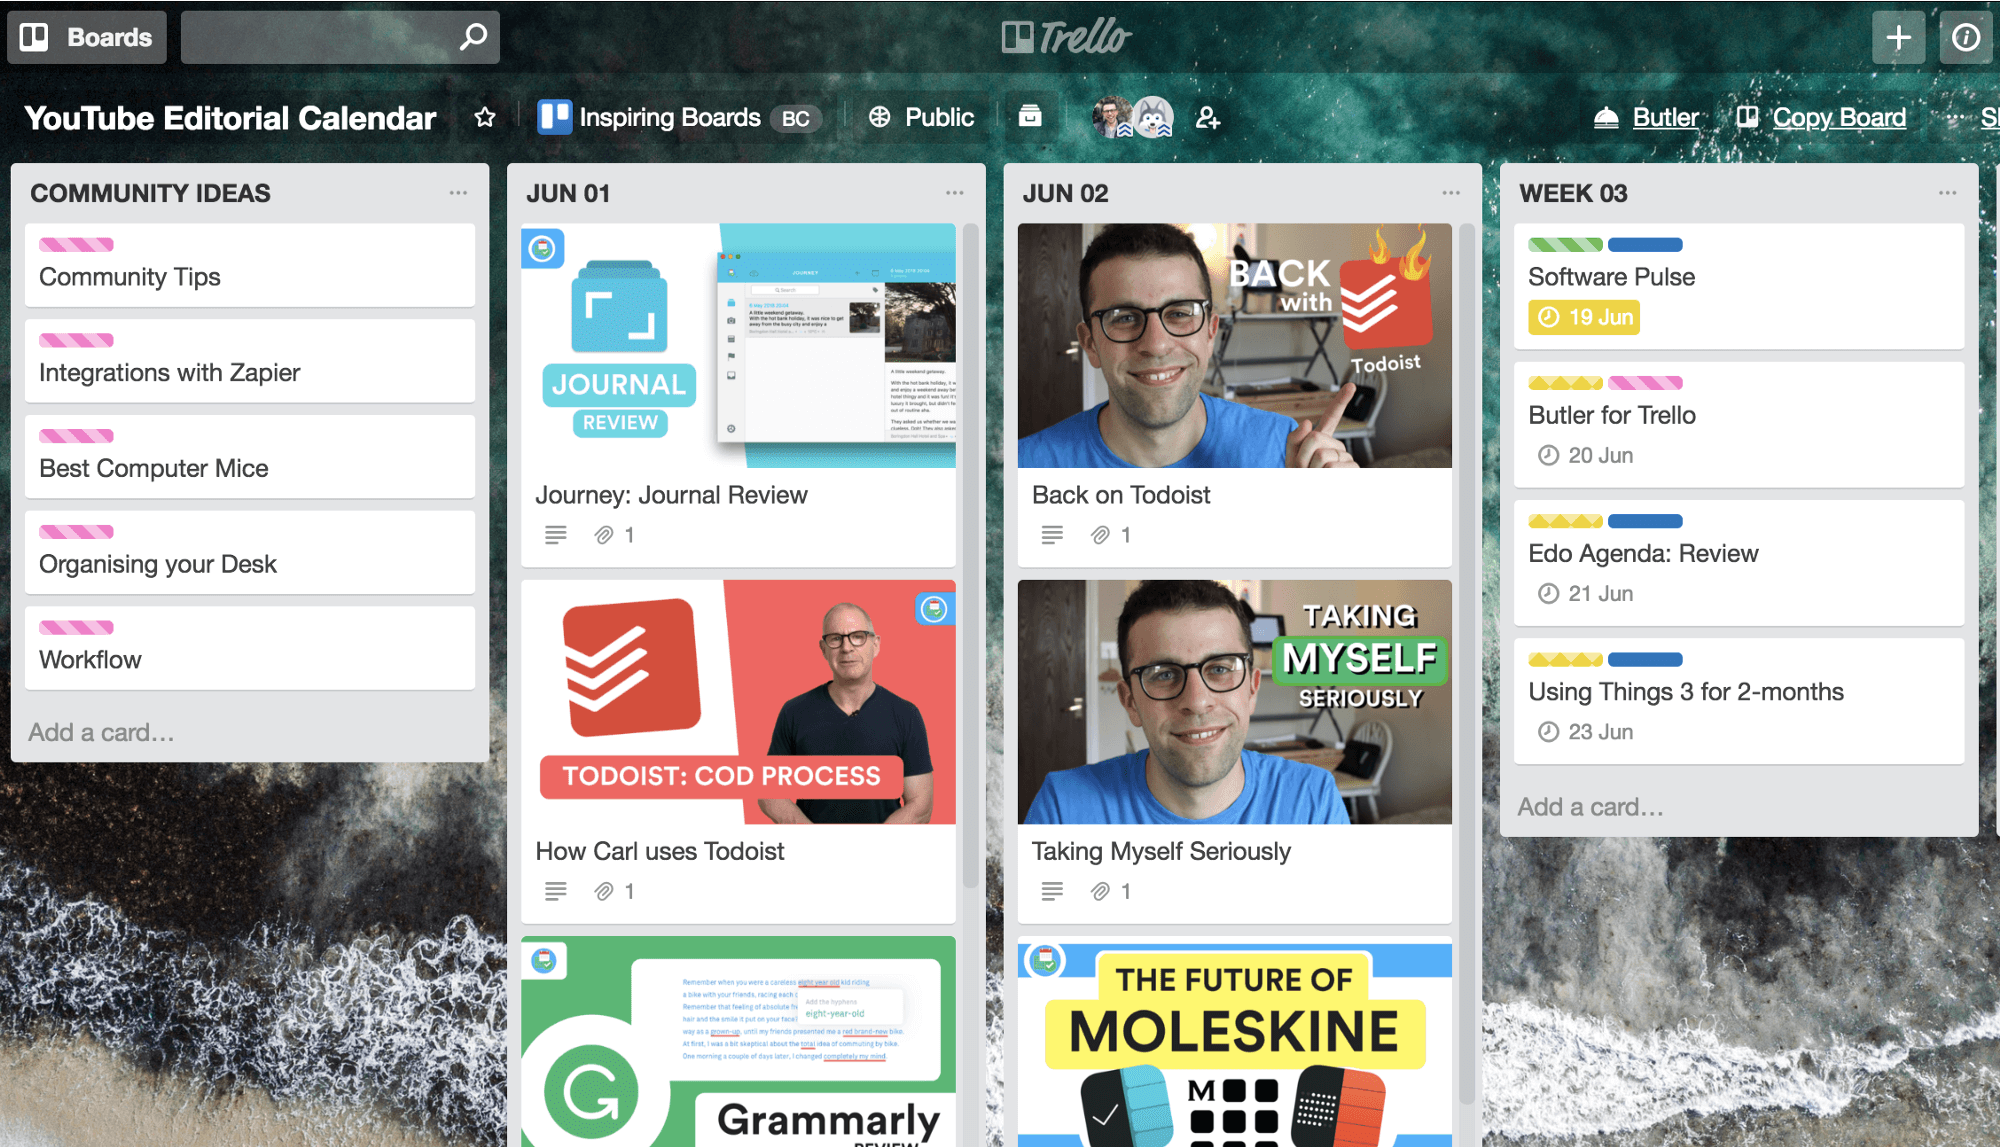 Sample Trello Board for YouTube Editorial Calendar